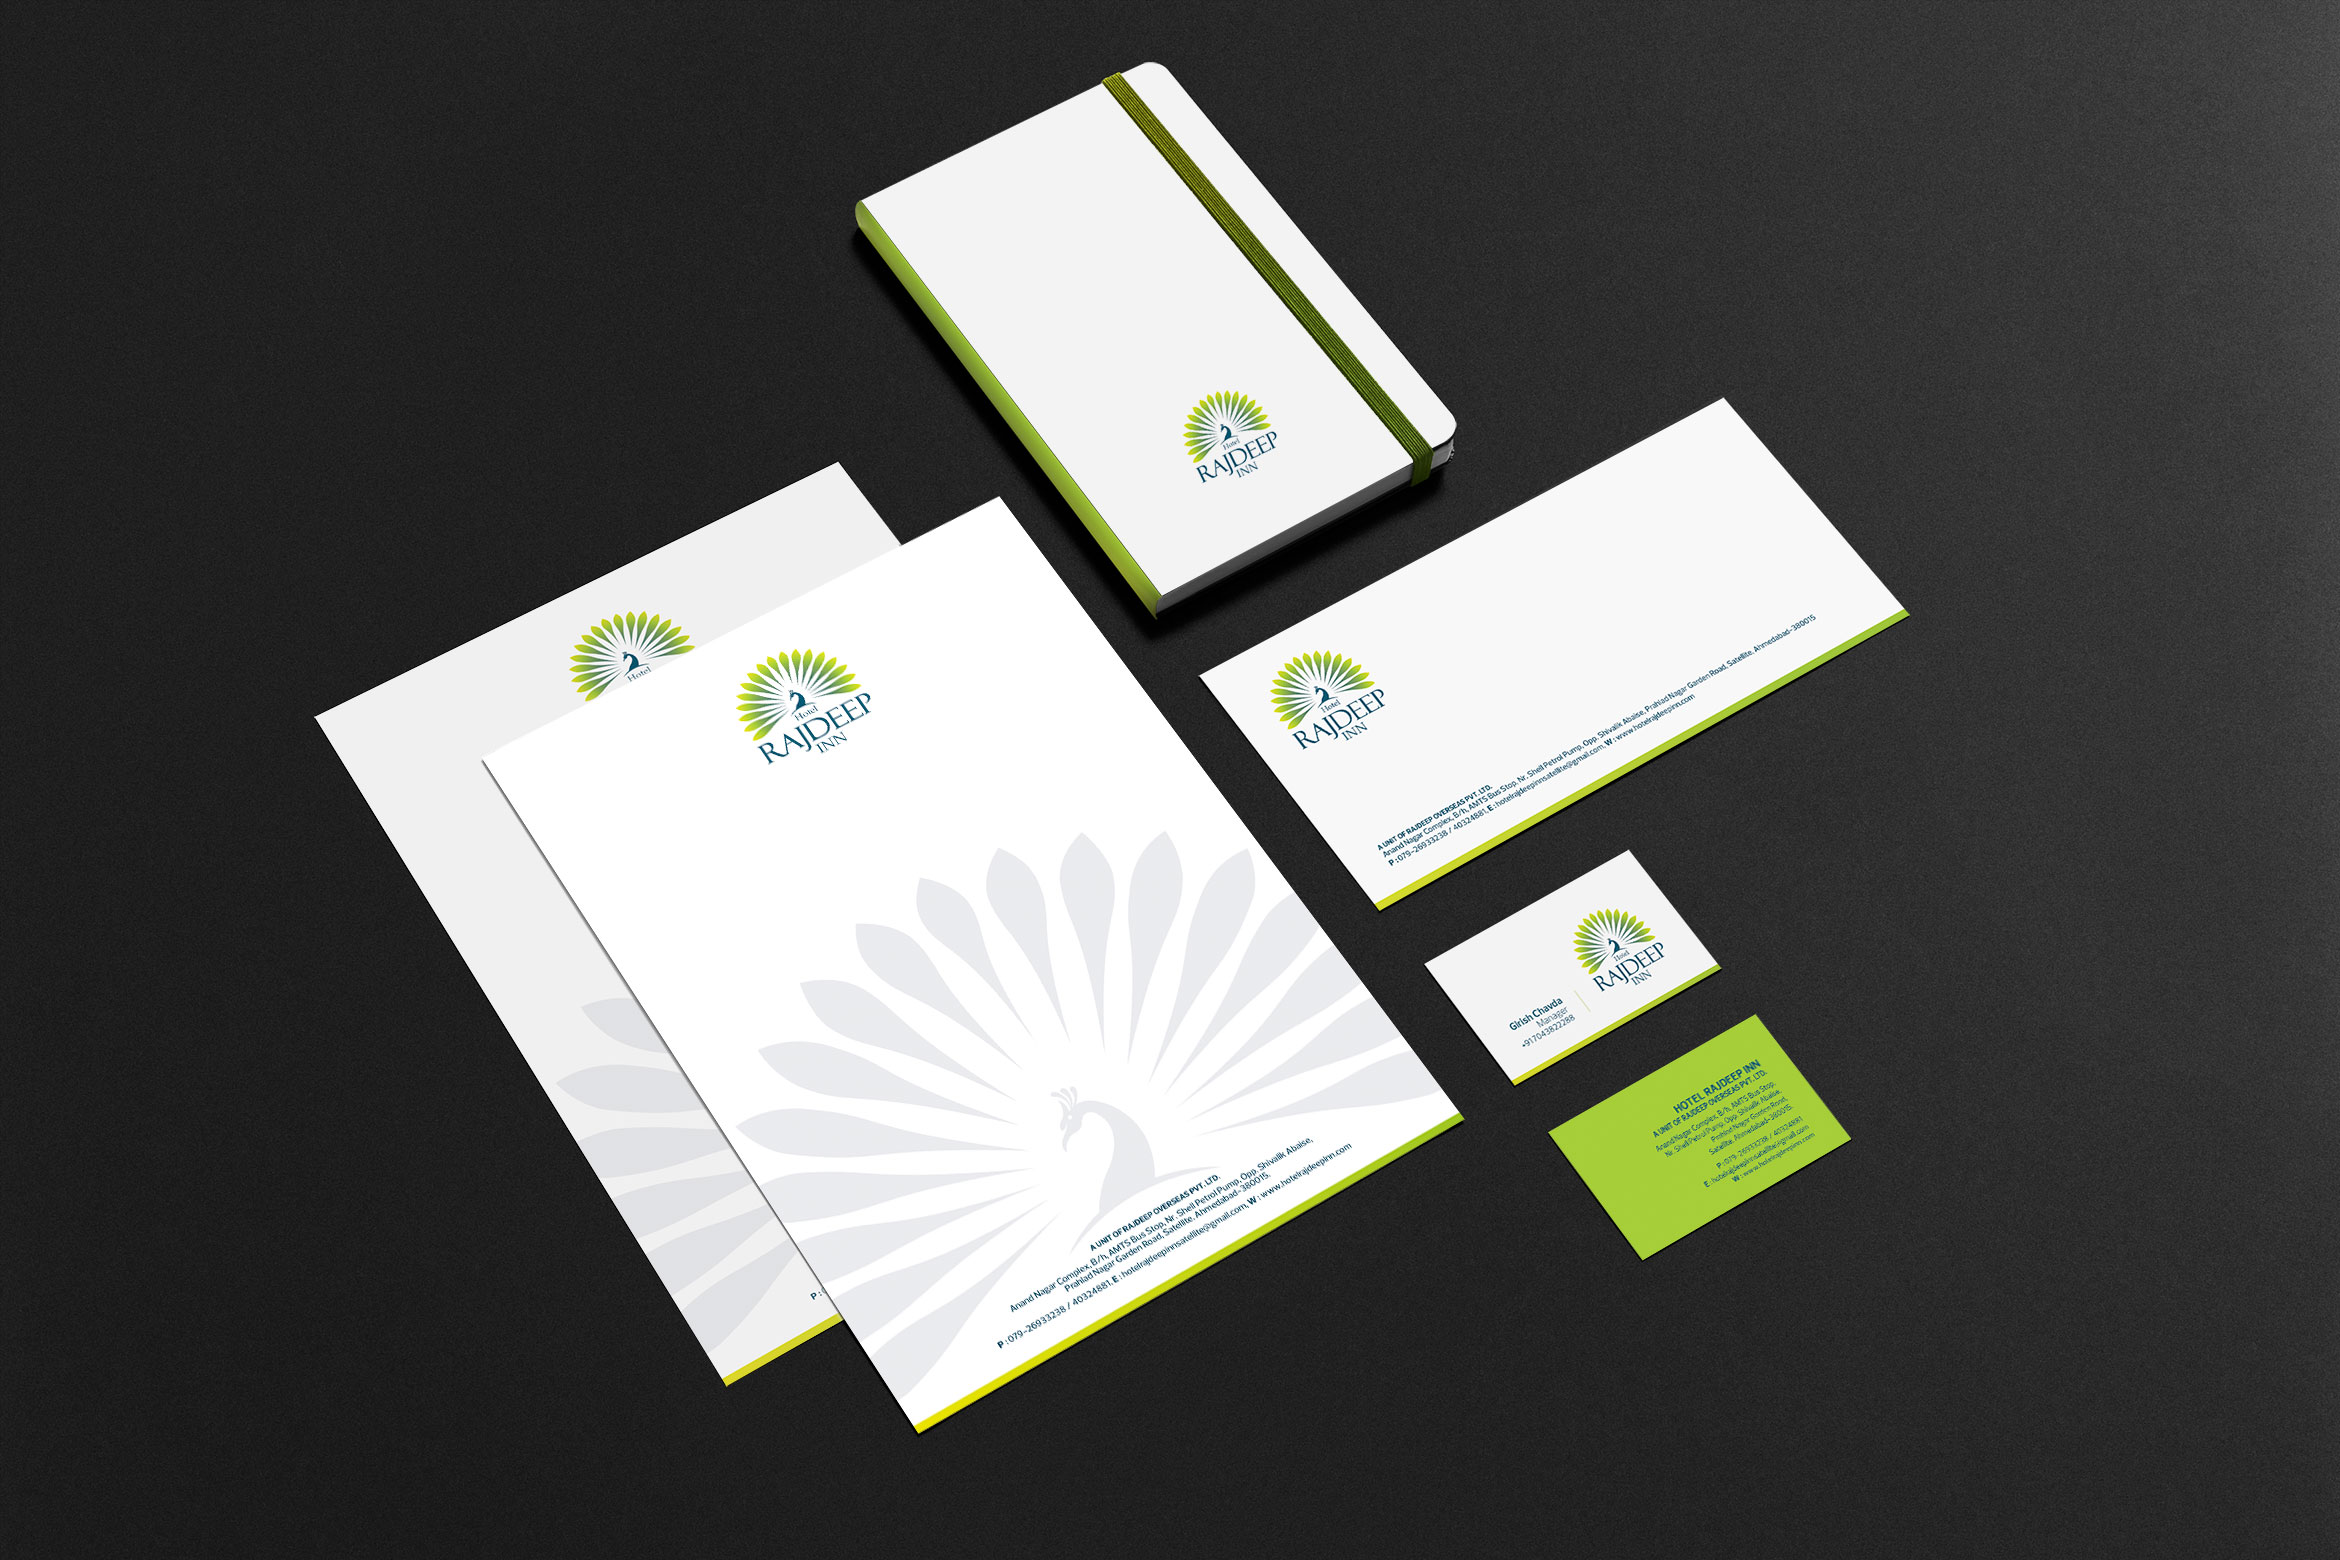 Hotel Rajdeep Inn Logo Design 2 rajdeep stationary